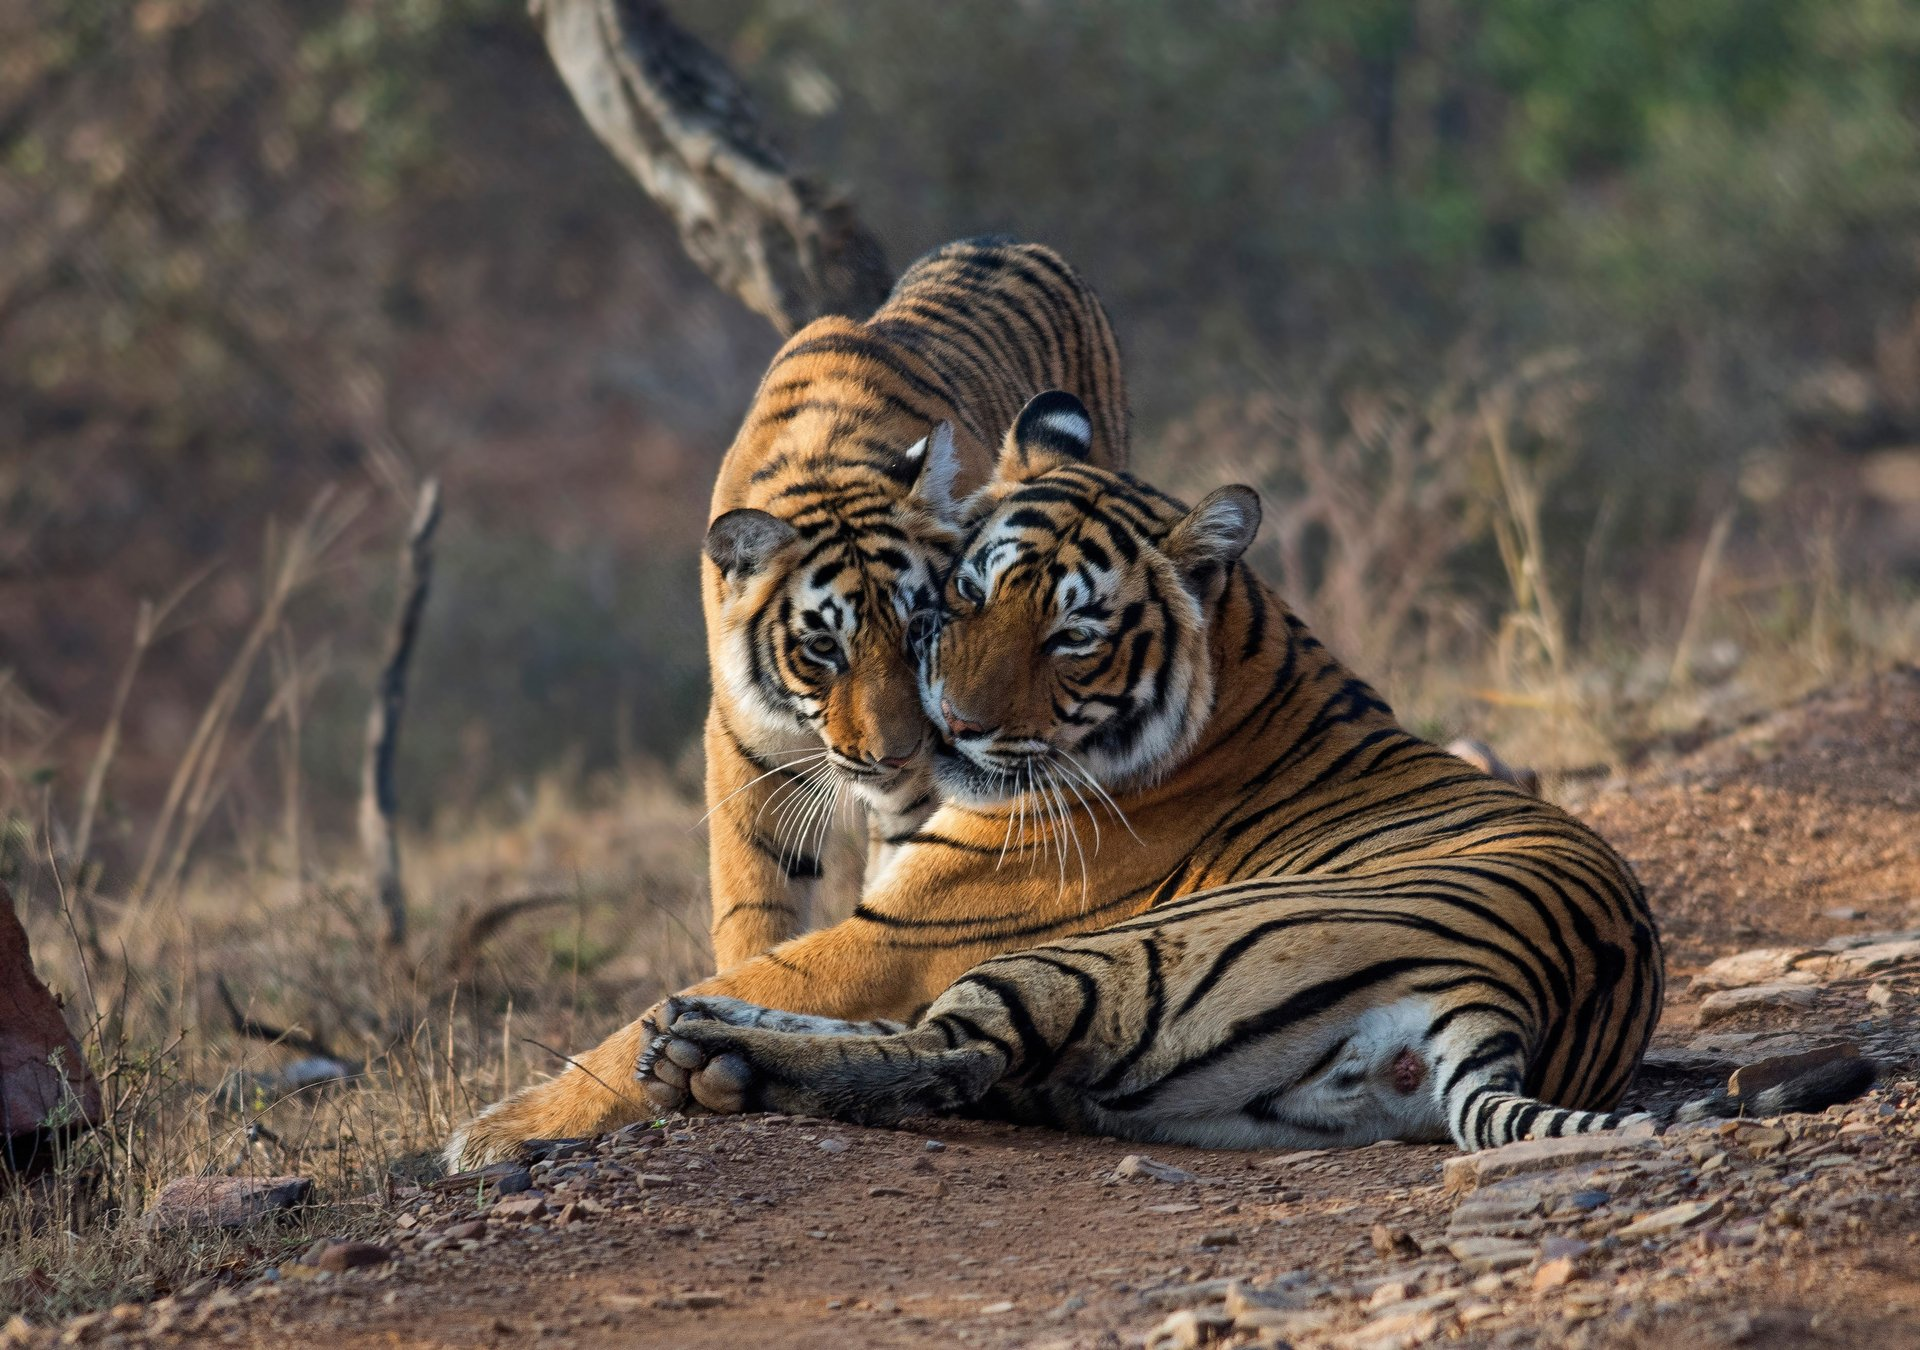 Tiger Safari in Ranthambore National Park in Taj Mahal and Agra  - Best Time